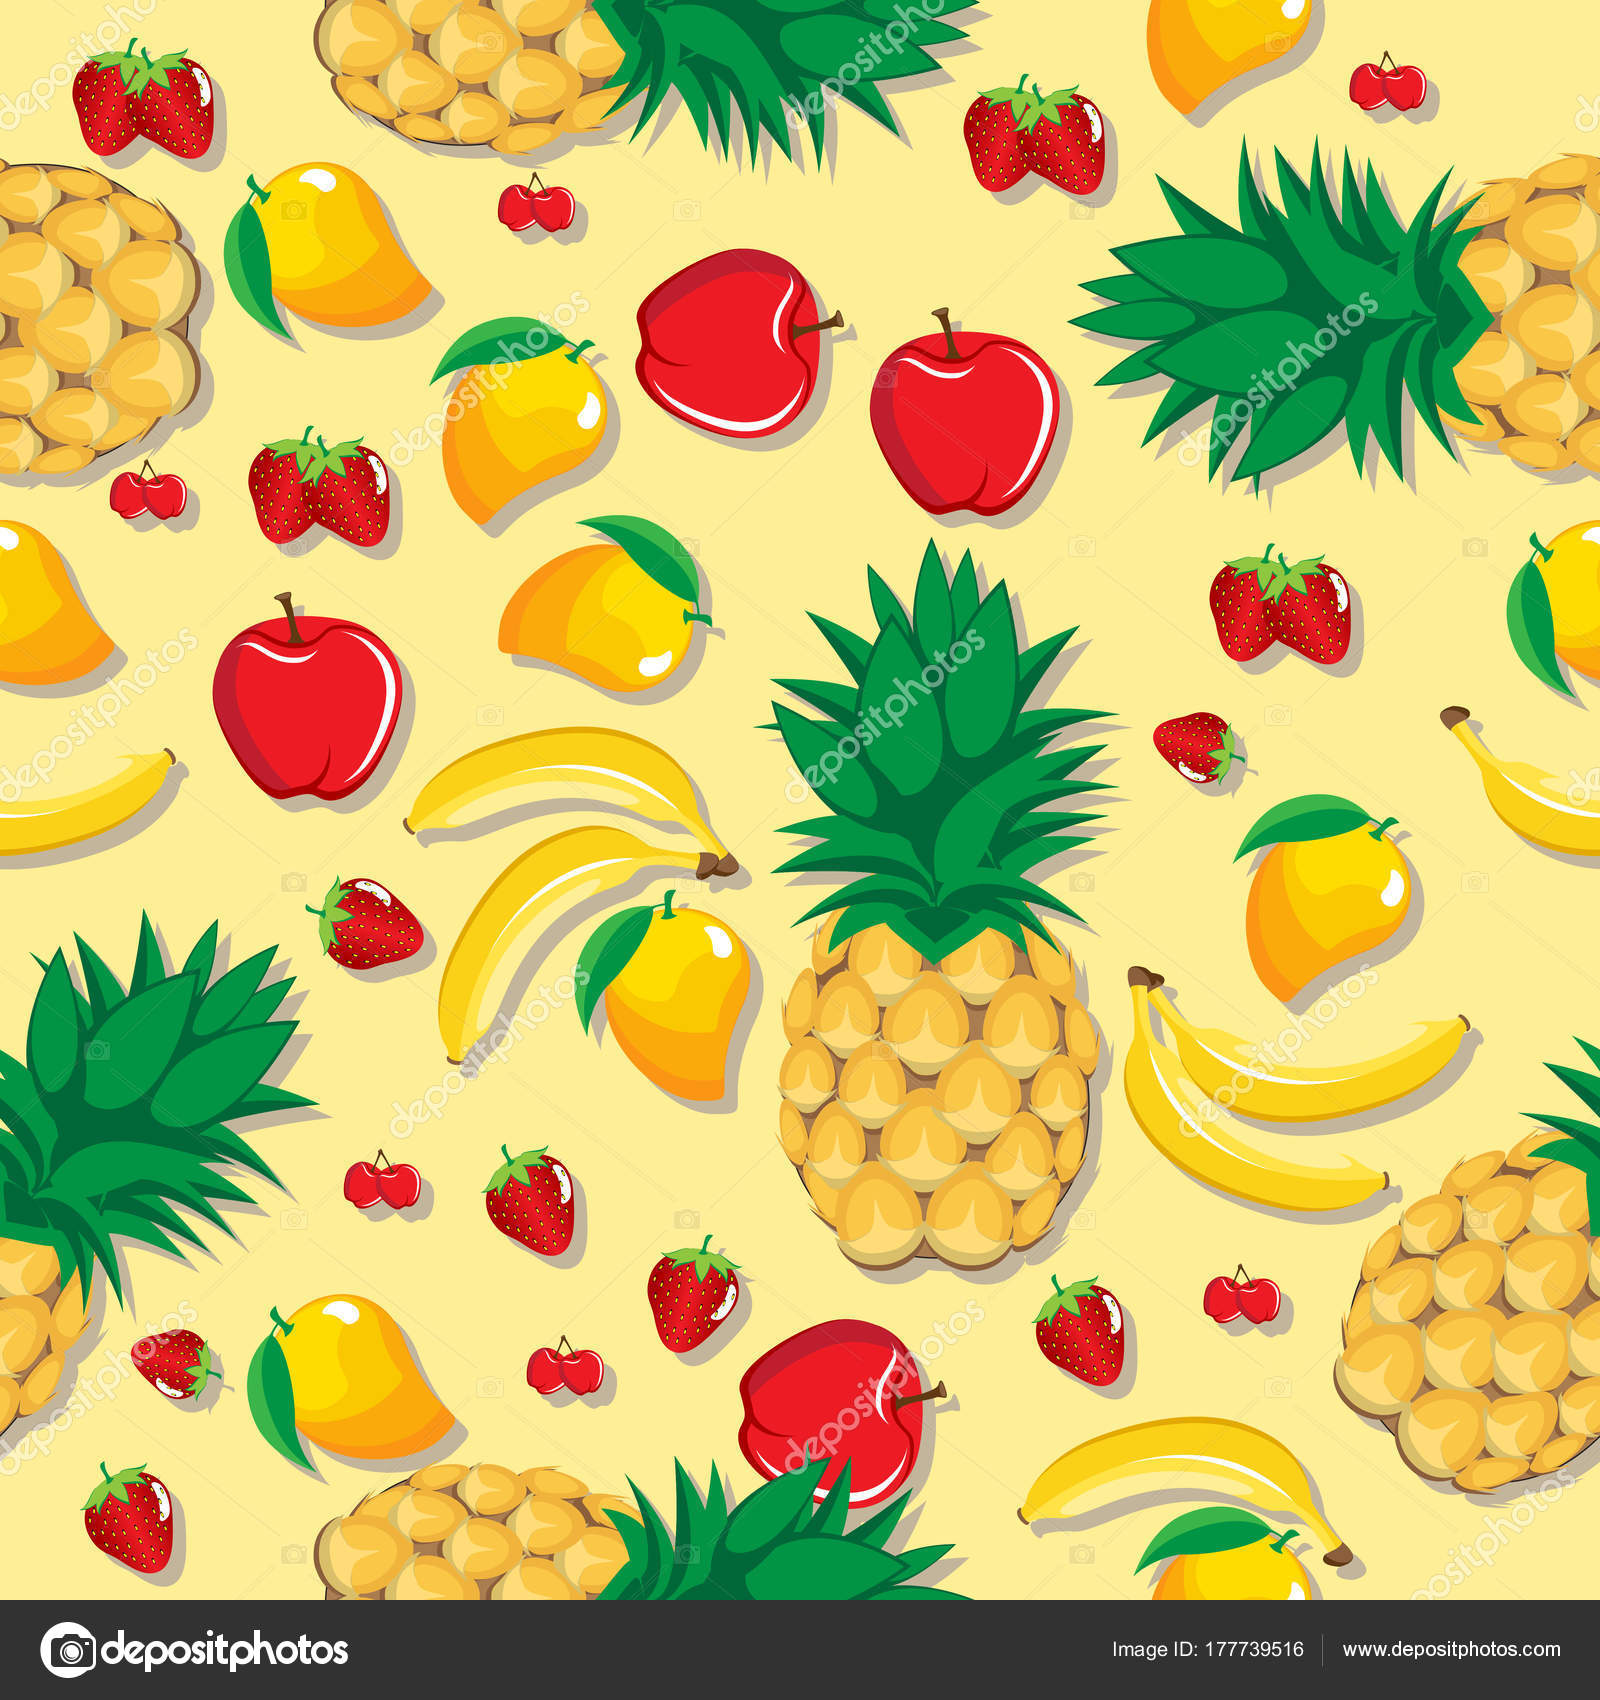 Best Wallpaper Macbook Pineapple - depositphotos_177739516-stock-illustration-mango-pineapple-apple-strawberry-banana  2018_782213.jpg